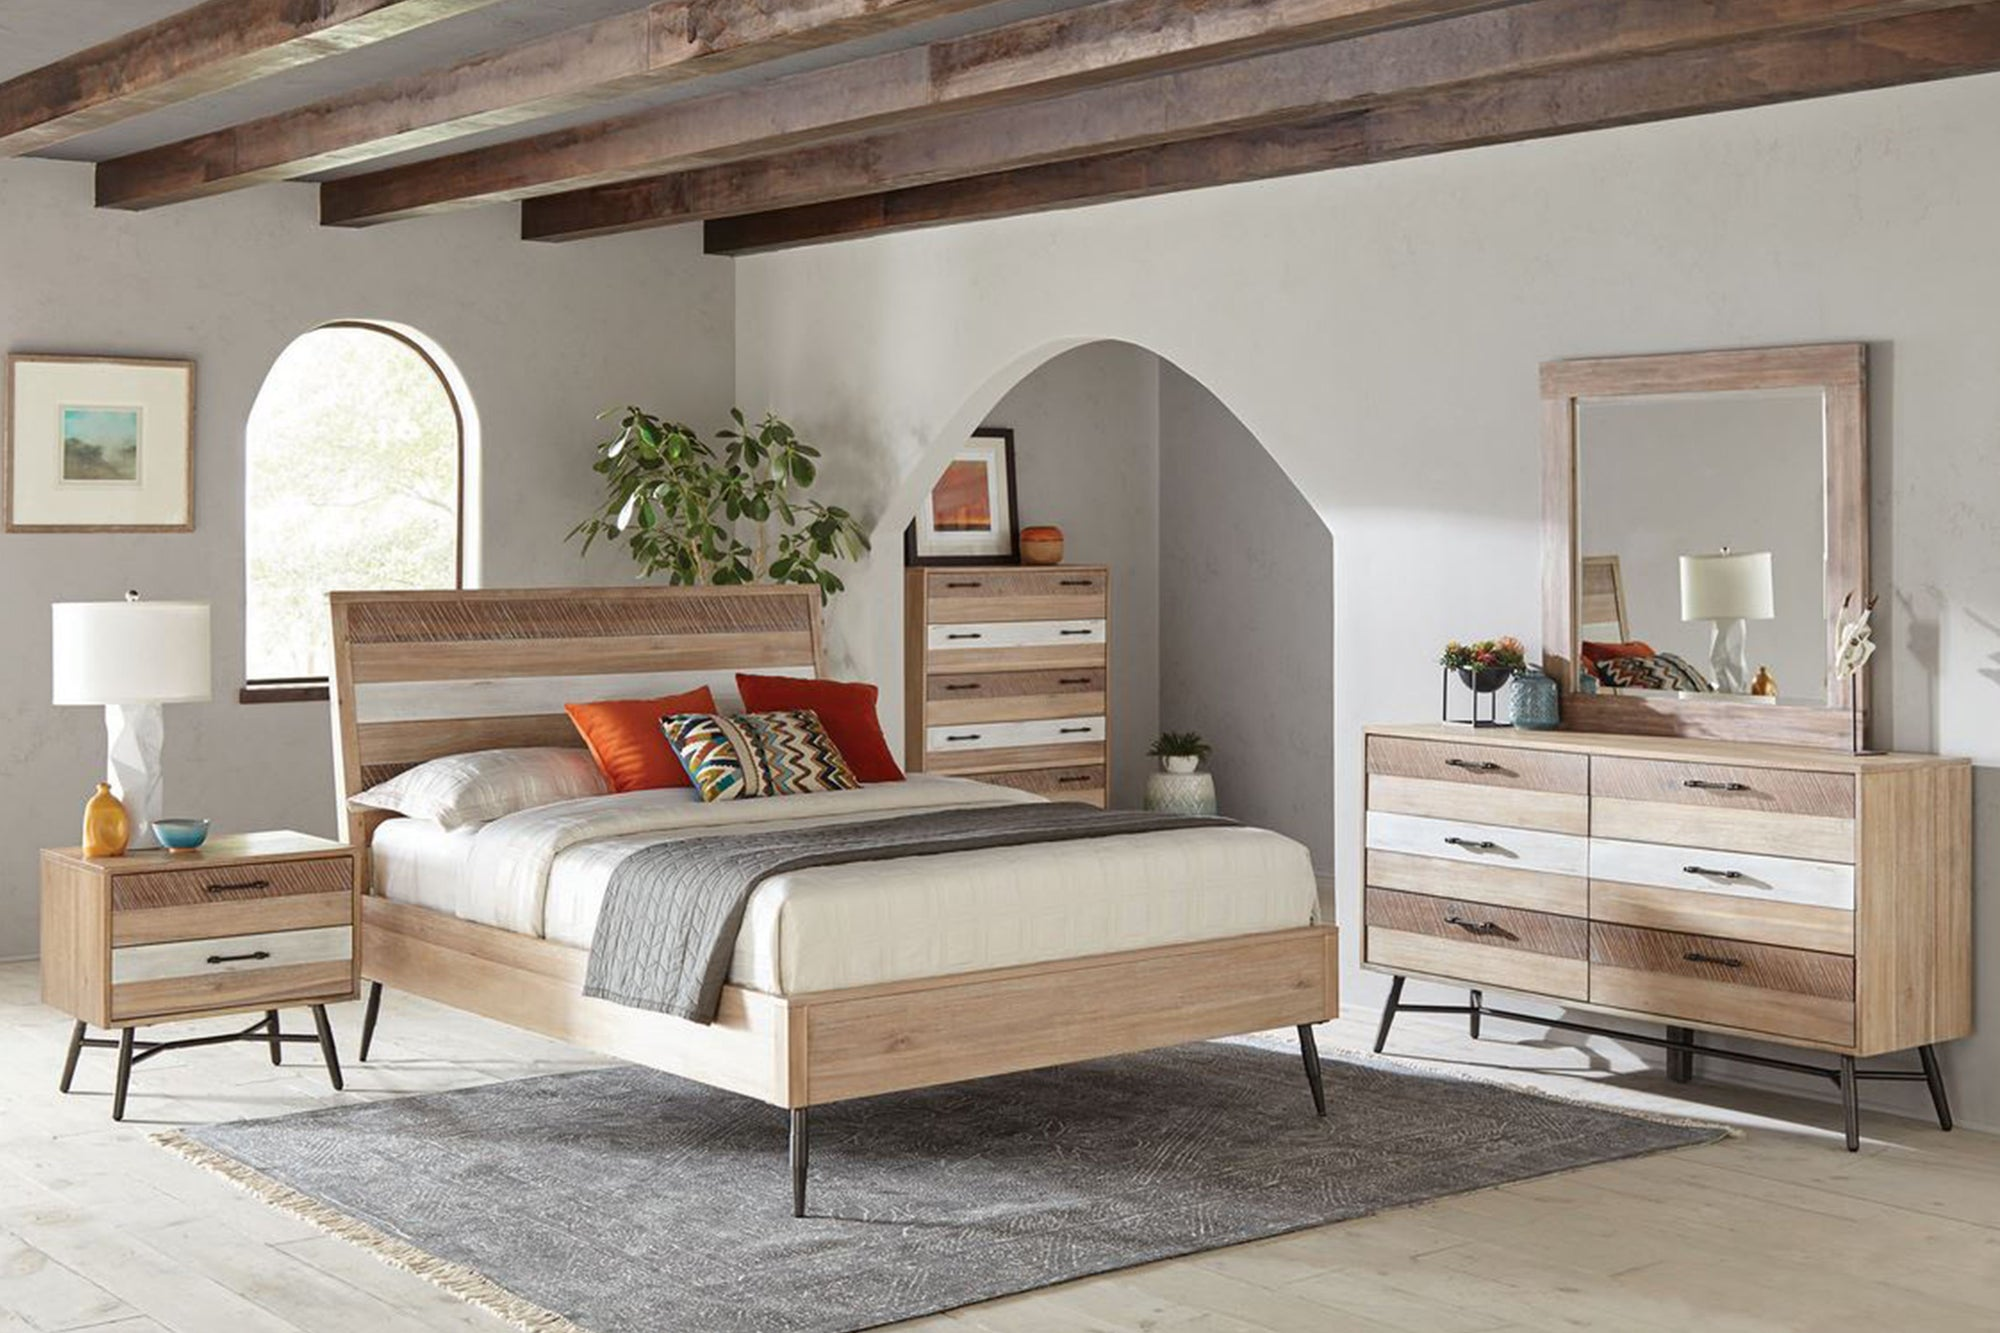 Marlow Queen Platform Bed Rough Sawn Multi Model # 18215761Q